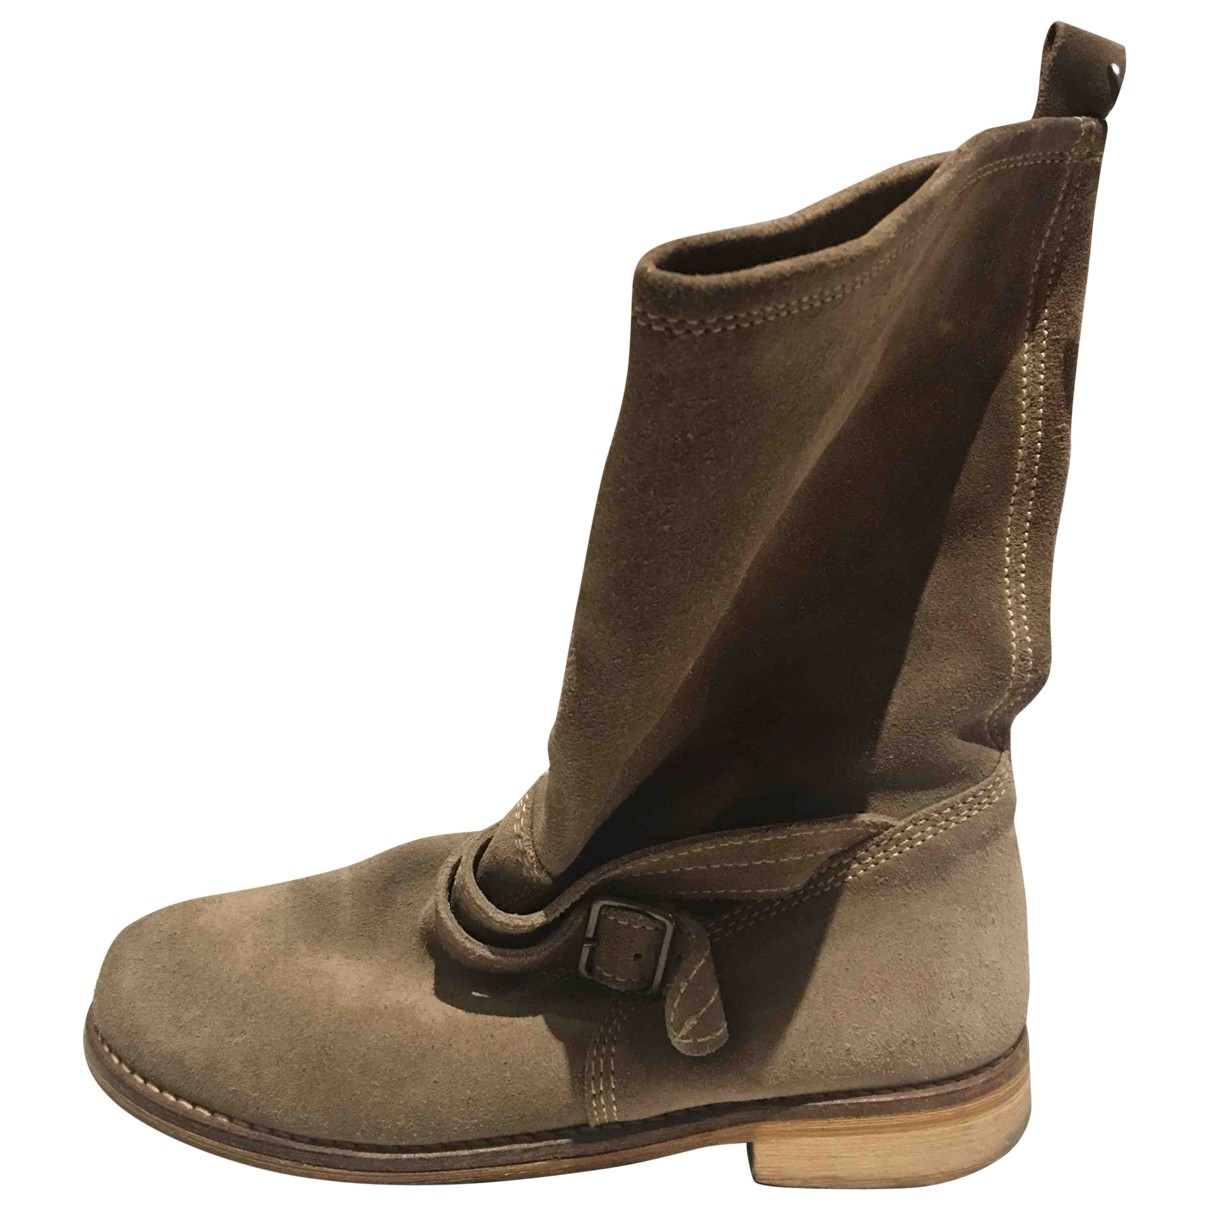 Max & Co \N Beige Suede Boots for Women 37 EU